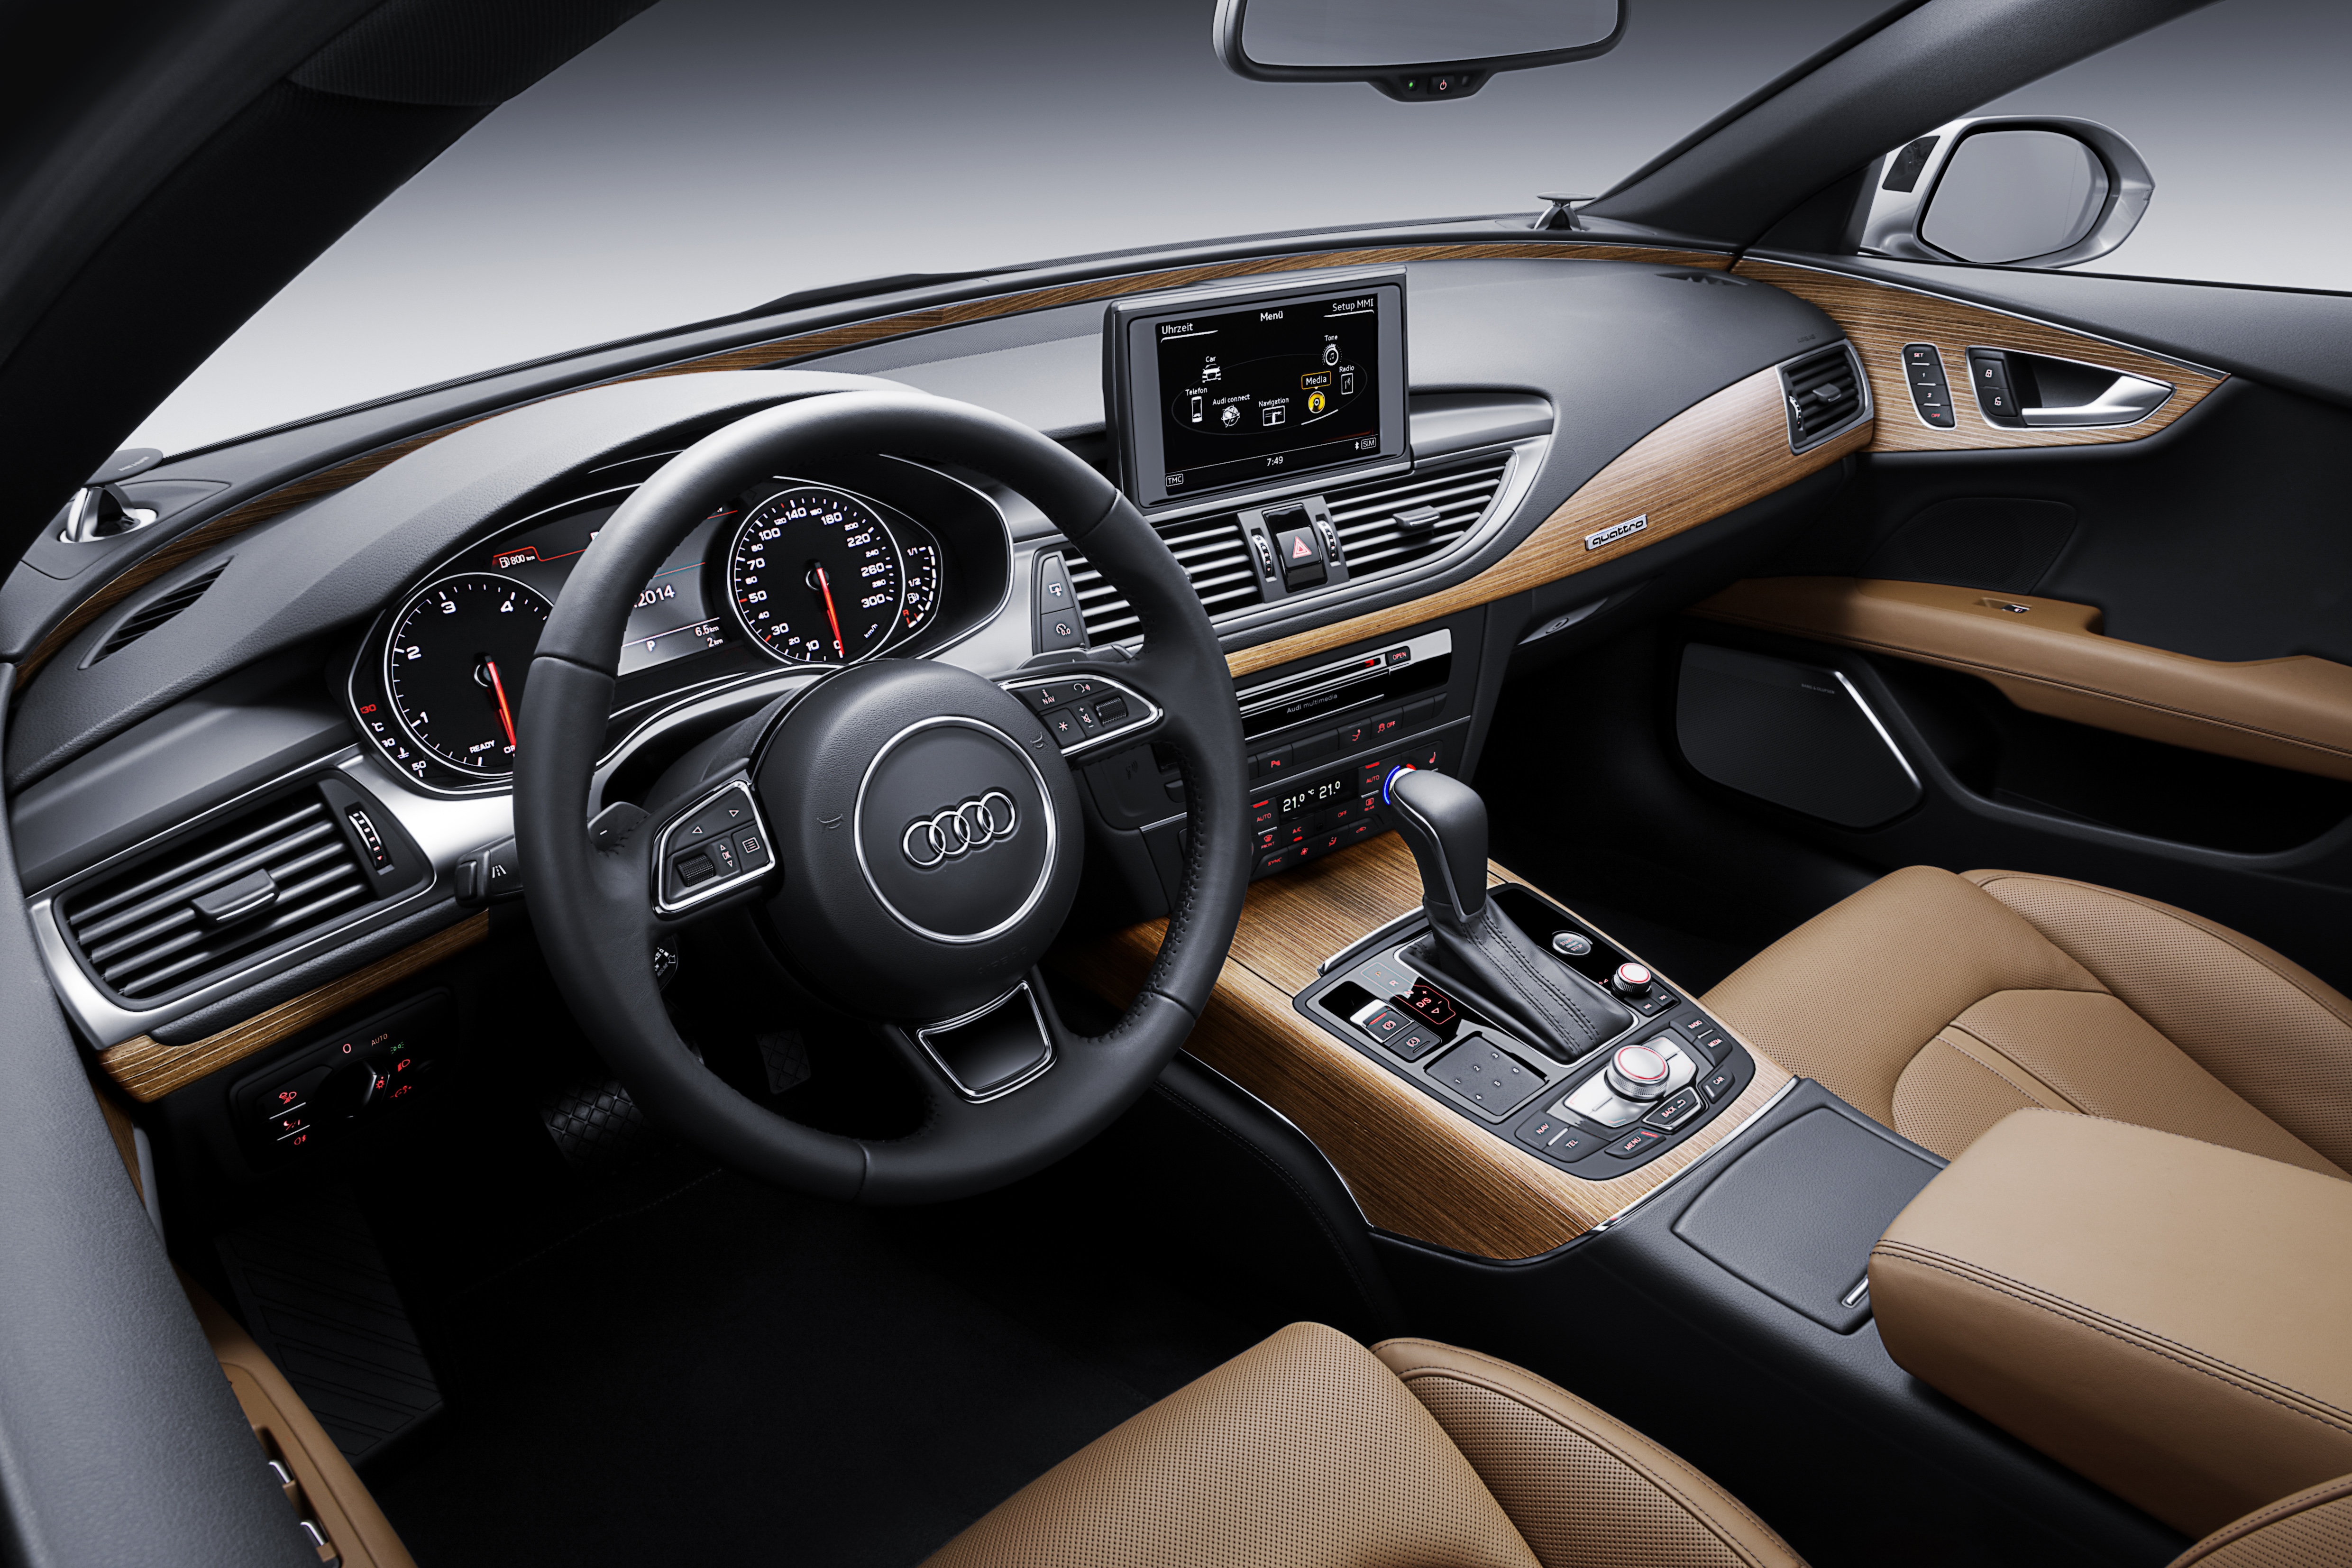 2018 Audi A7 Sportback >> Audi A7 and S7 Sportback facelift – new 3.0 TDI ultra Paul Tan - Image 249028